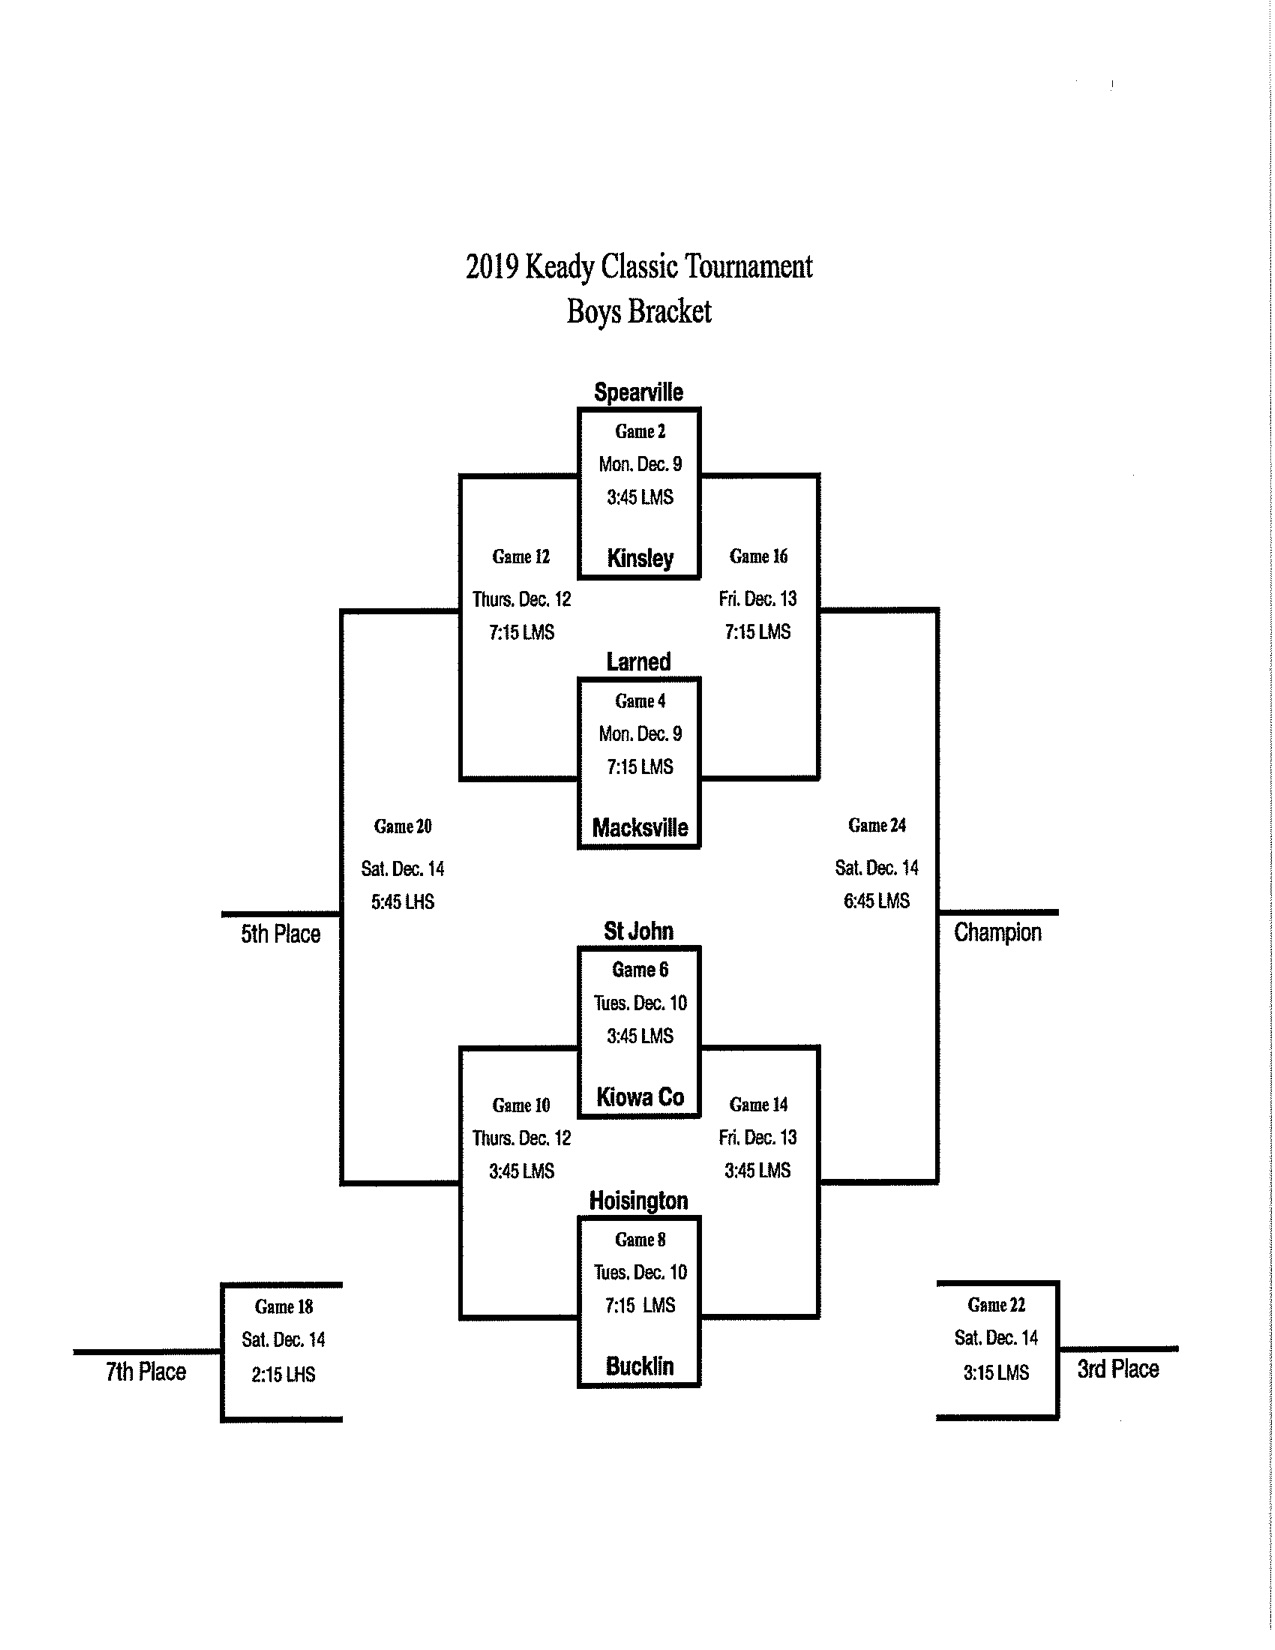 2019 Keady Classic Boys Tournament Bracket